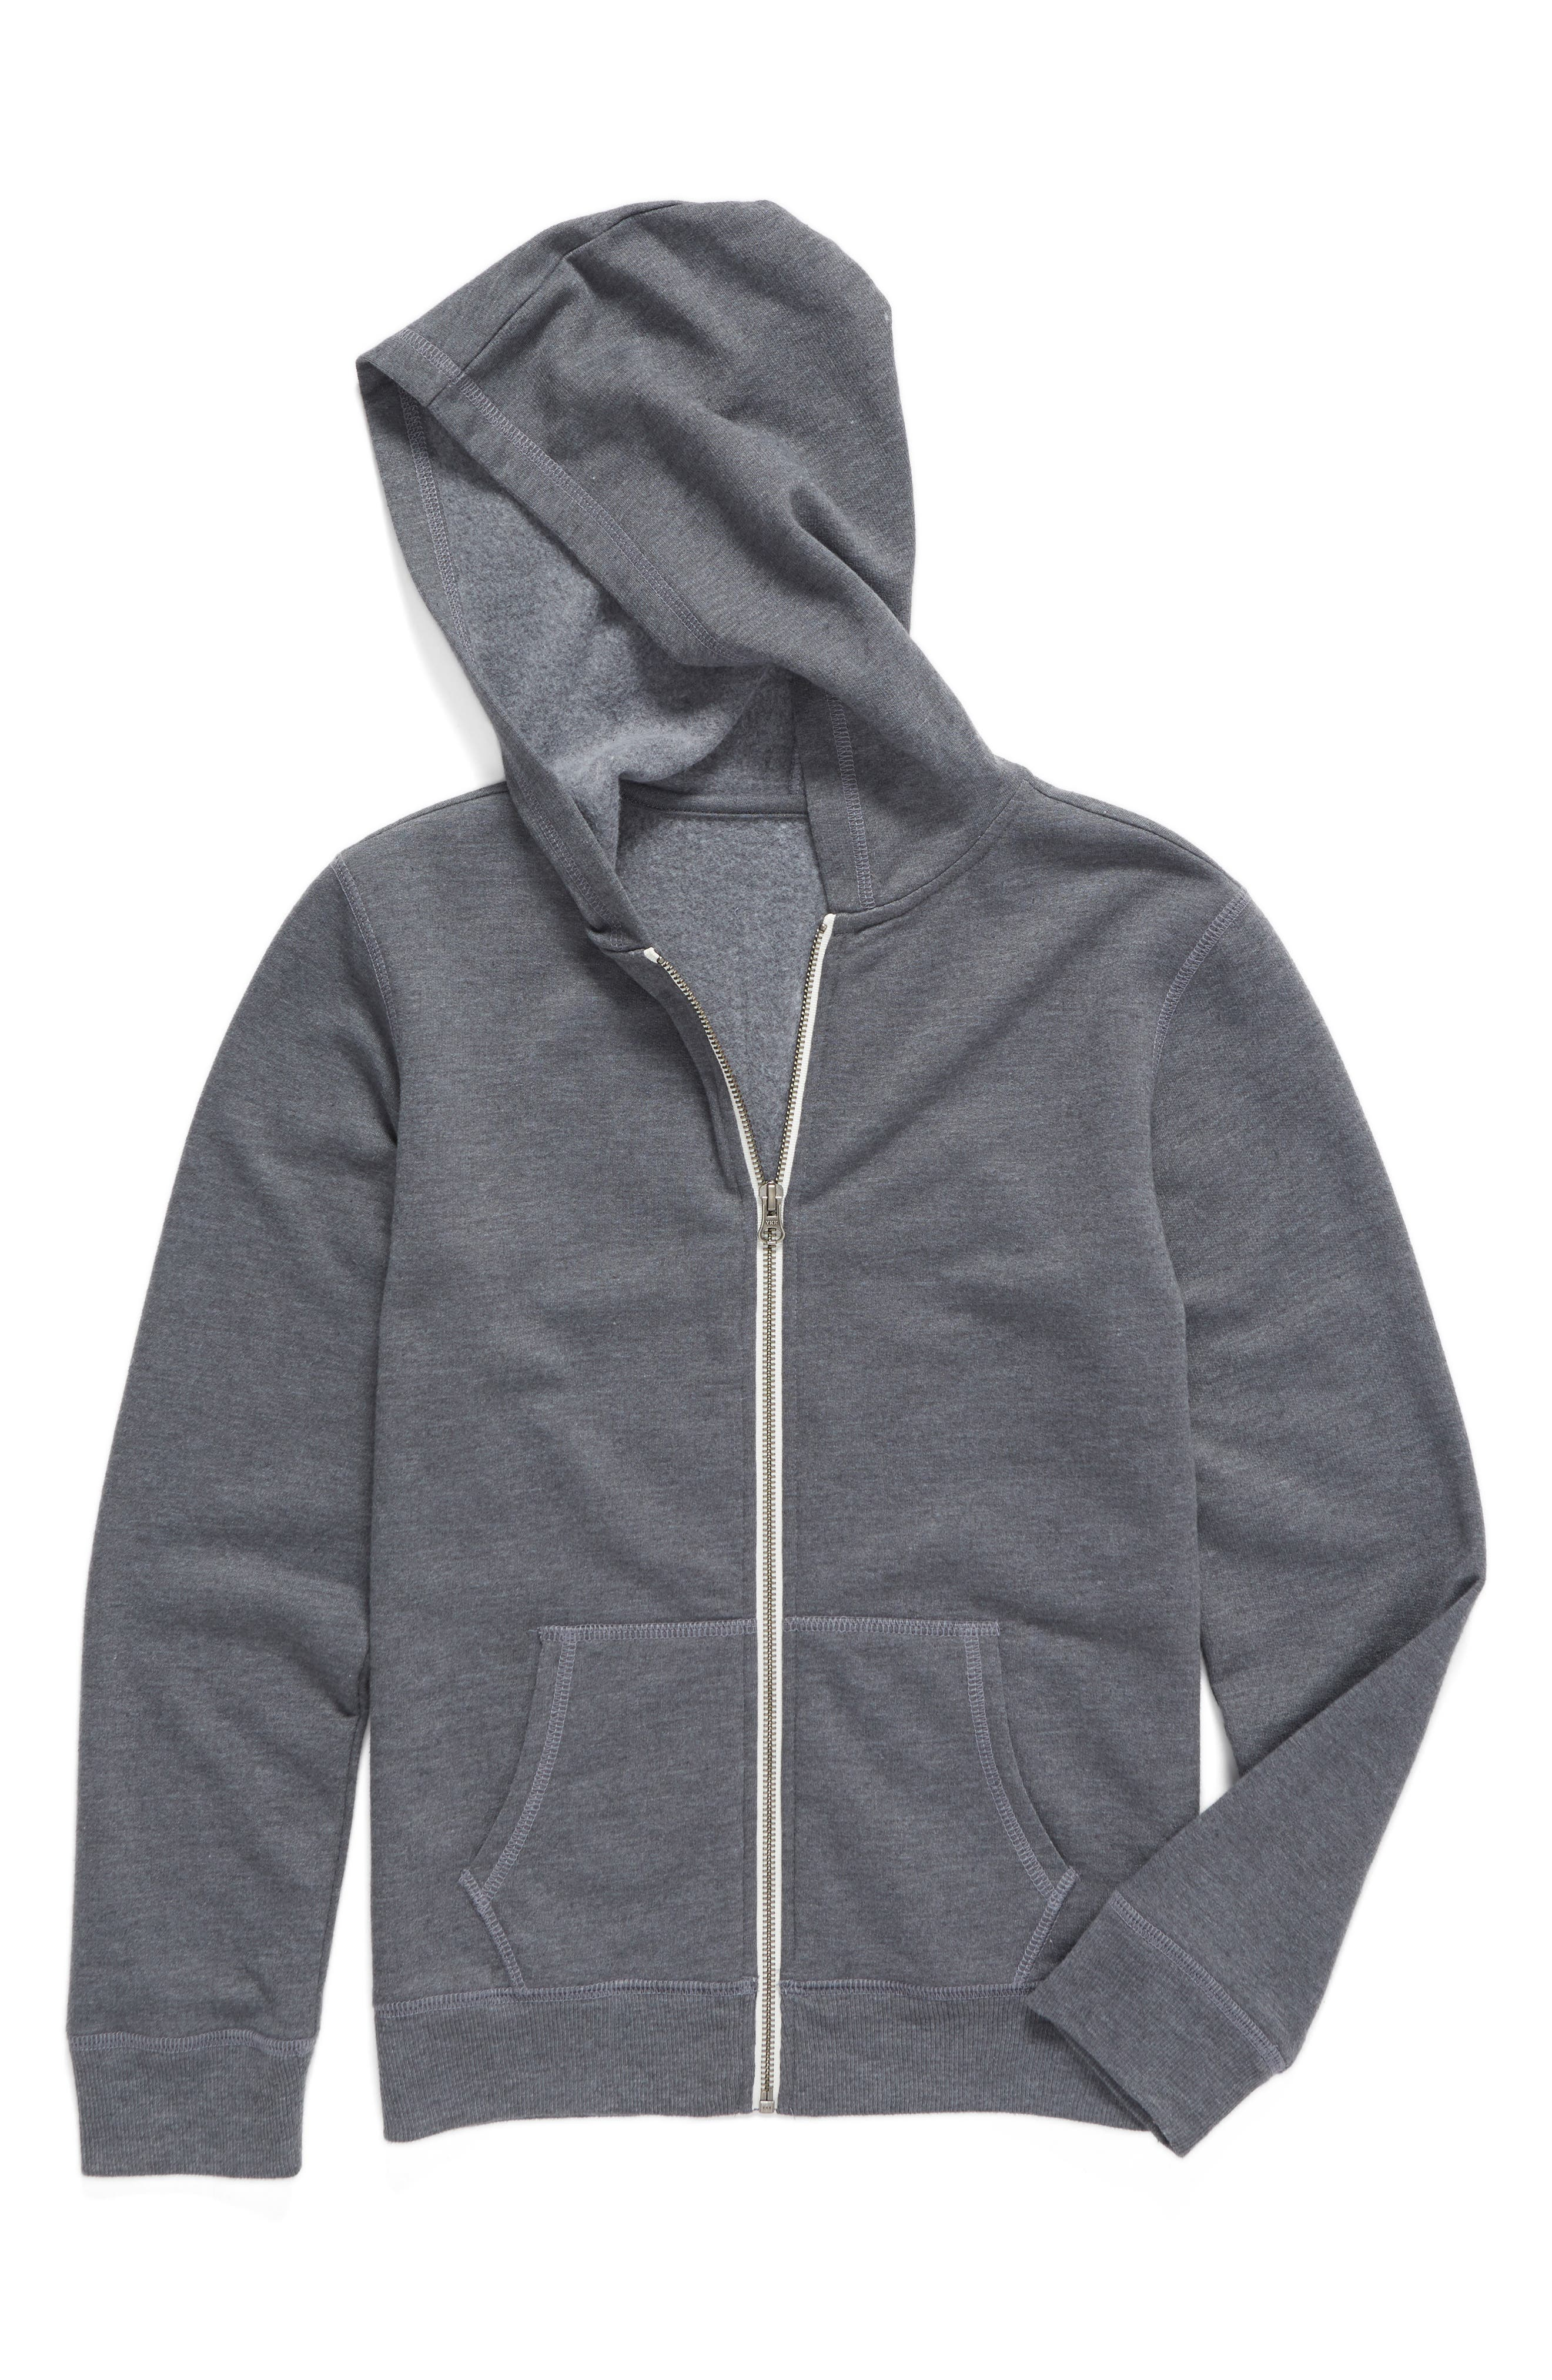 Alternate Image 1 Selected - Tucker + Tate Zip-Up Hooded Sweatshirt (Toddler Boys, Little Boys & Big Boys)